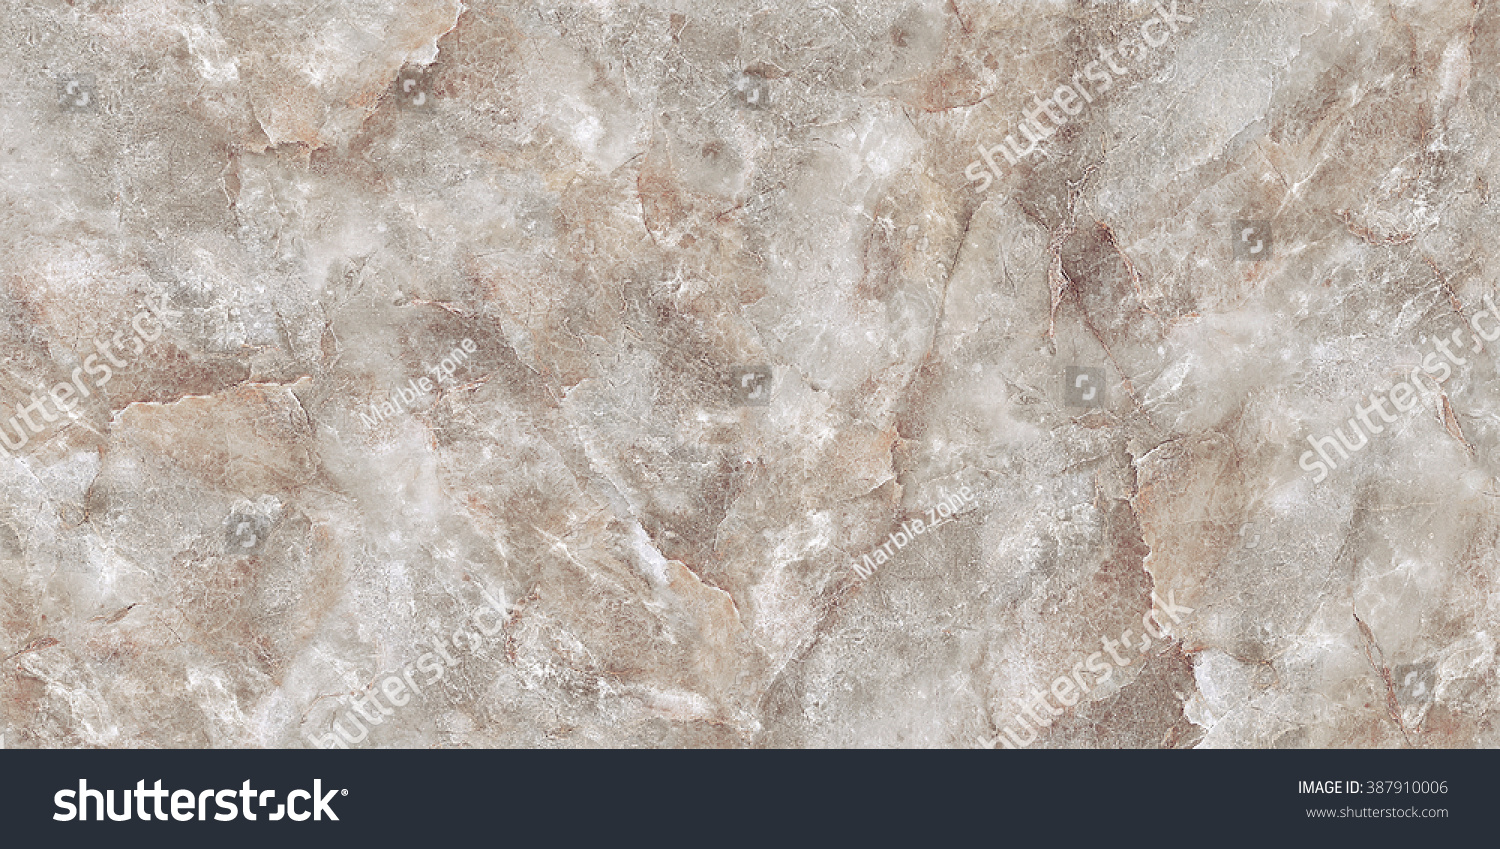 Marble texture background stock photo 387910006 shutterstock